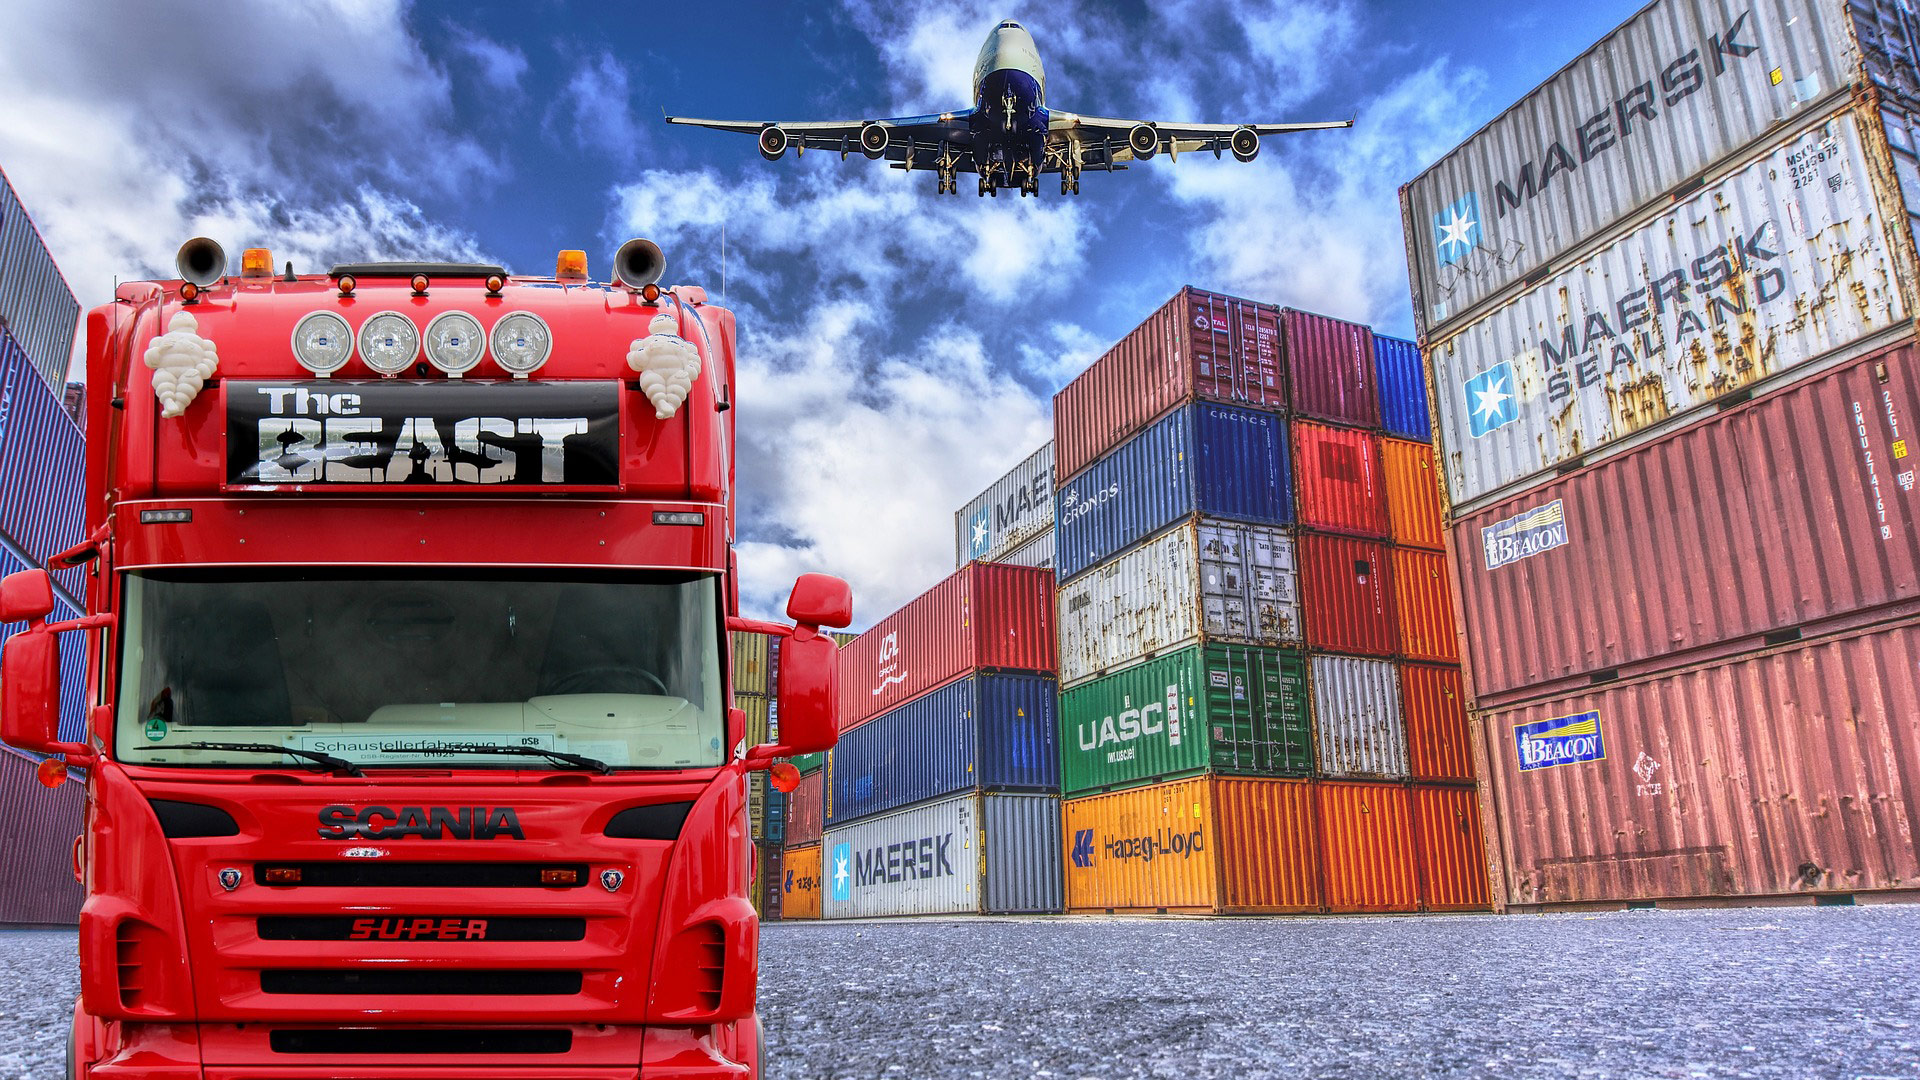 An image depicting common shipping industry vehicles; a red truck and an airplane, as well as shipping containers.